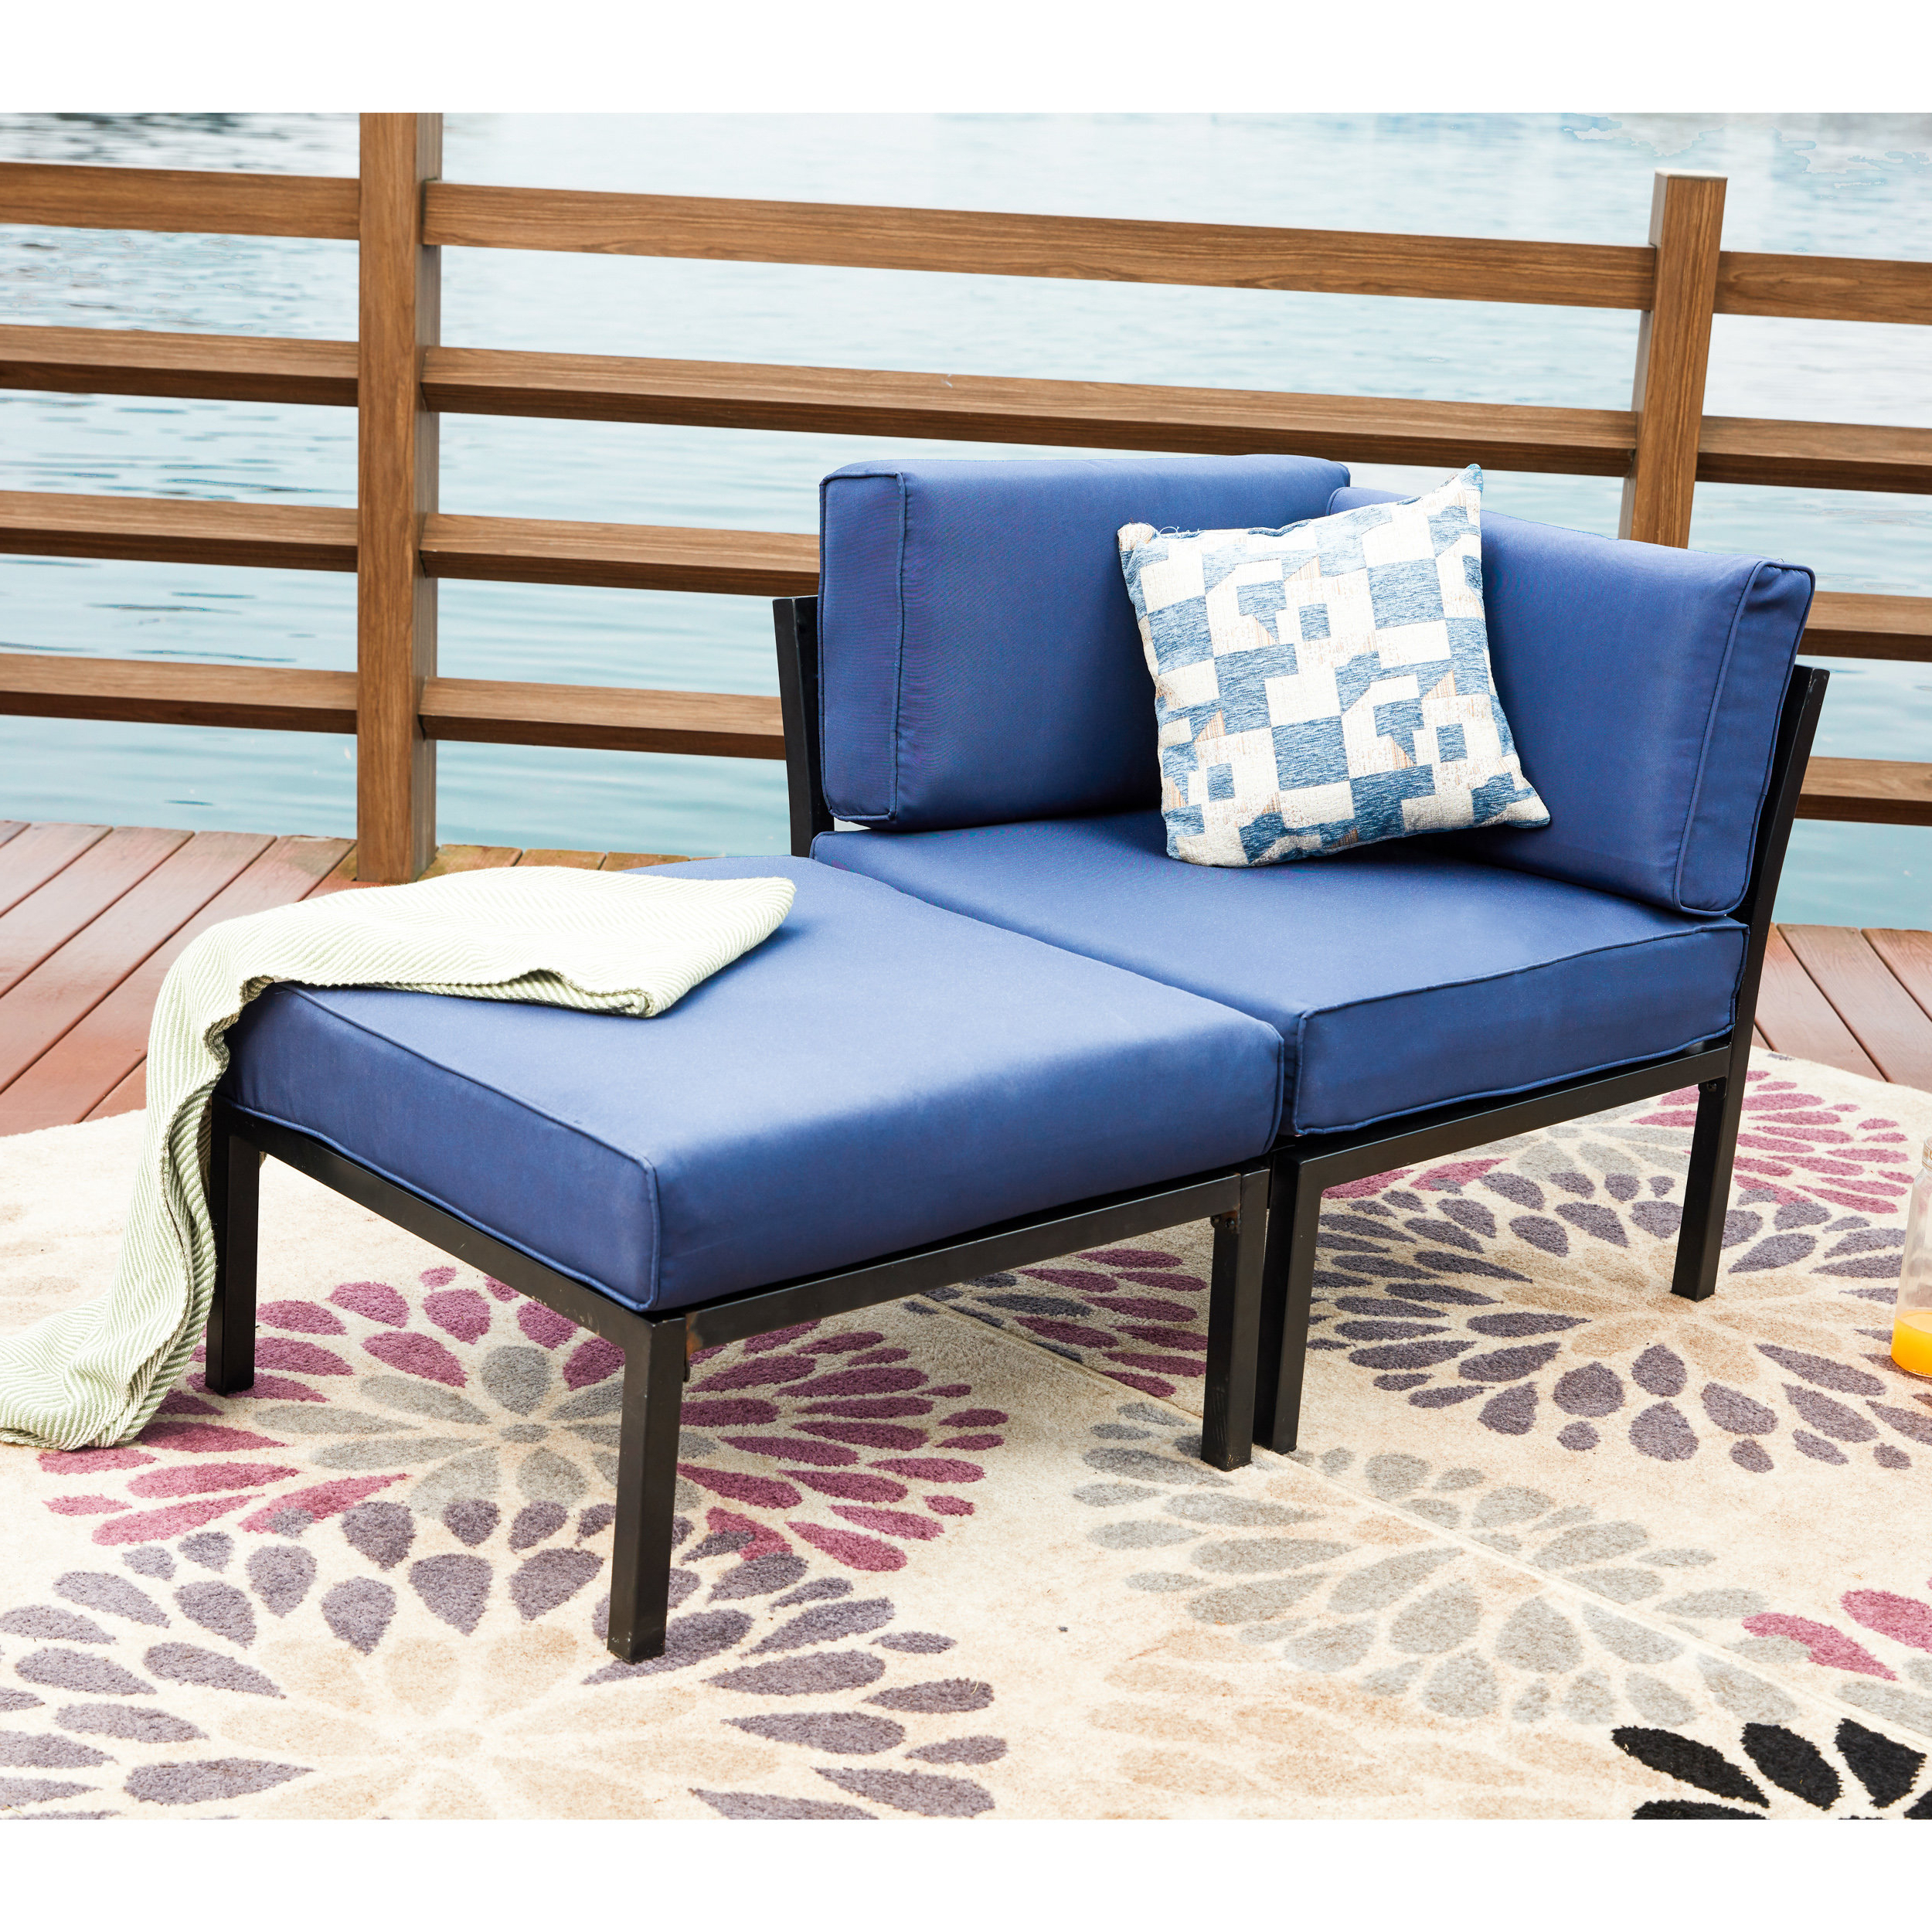 Preferred Payeur Loveseat With Cushions Throughout Bullock Outdoor Wooden Loveseats With Cushions (View 14 of 20)